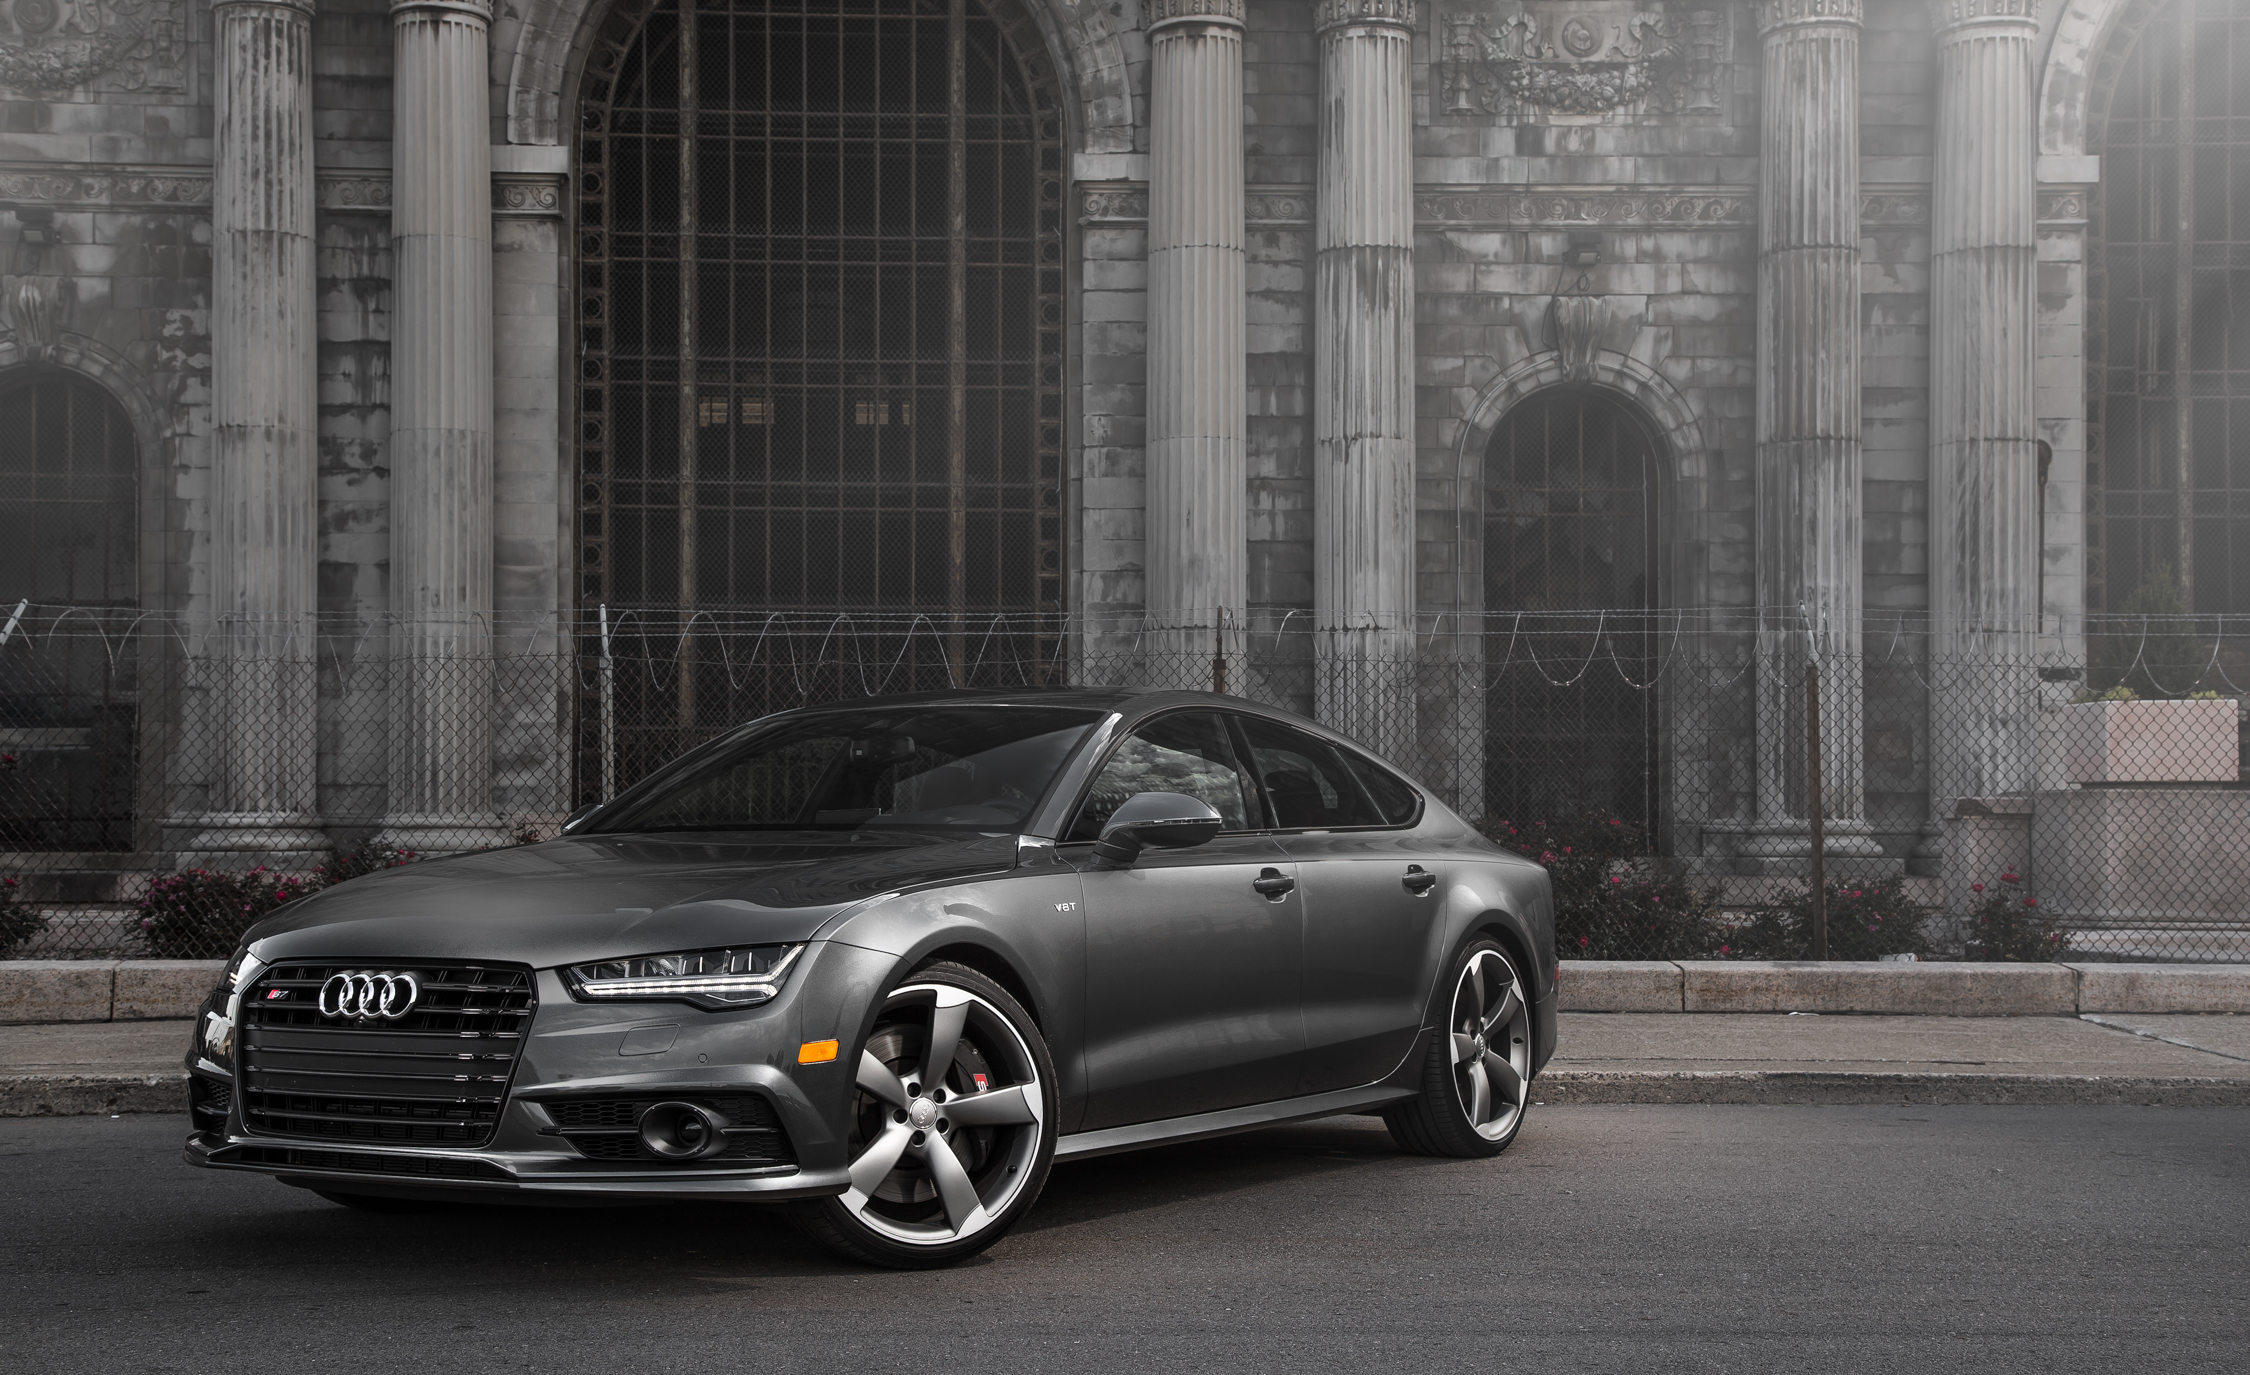 2016 audi s7 specification and price 7220 cars performance reviews and test drive. Black Bedroom Furniture Sets. Home Design Ideas